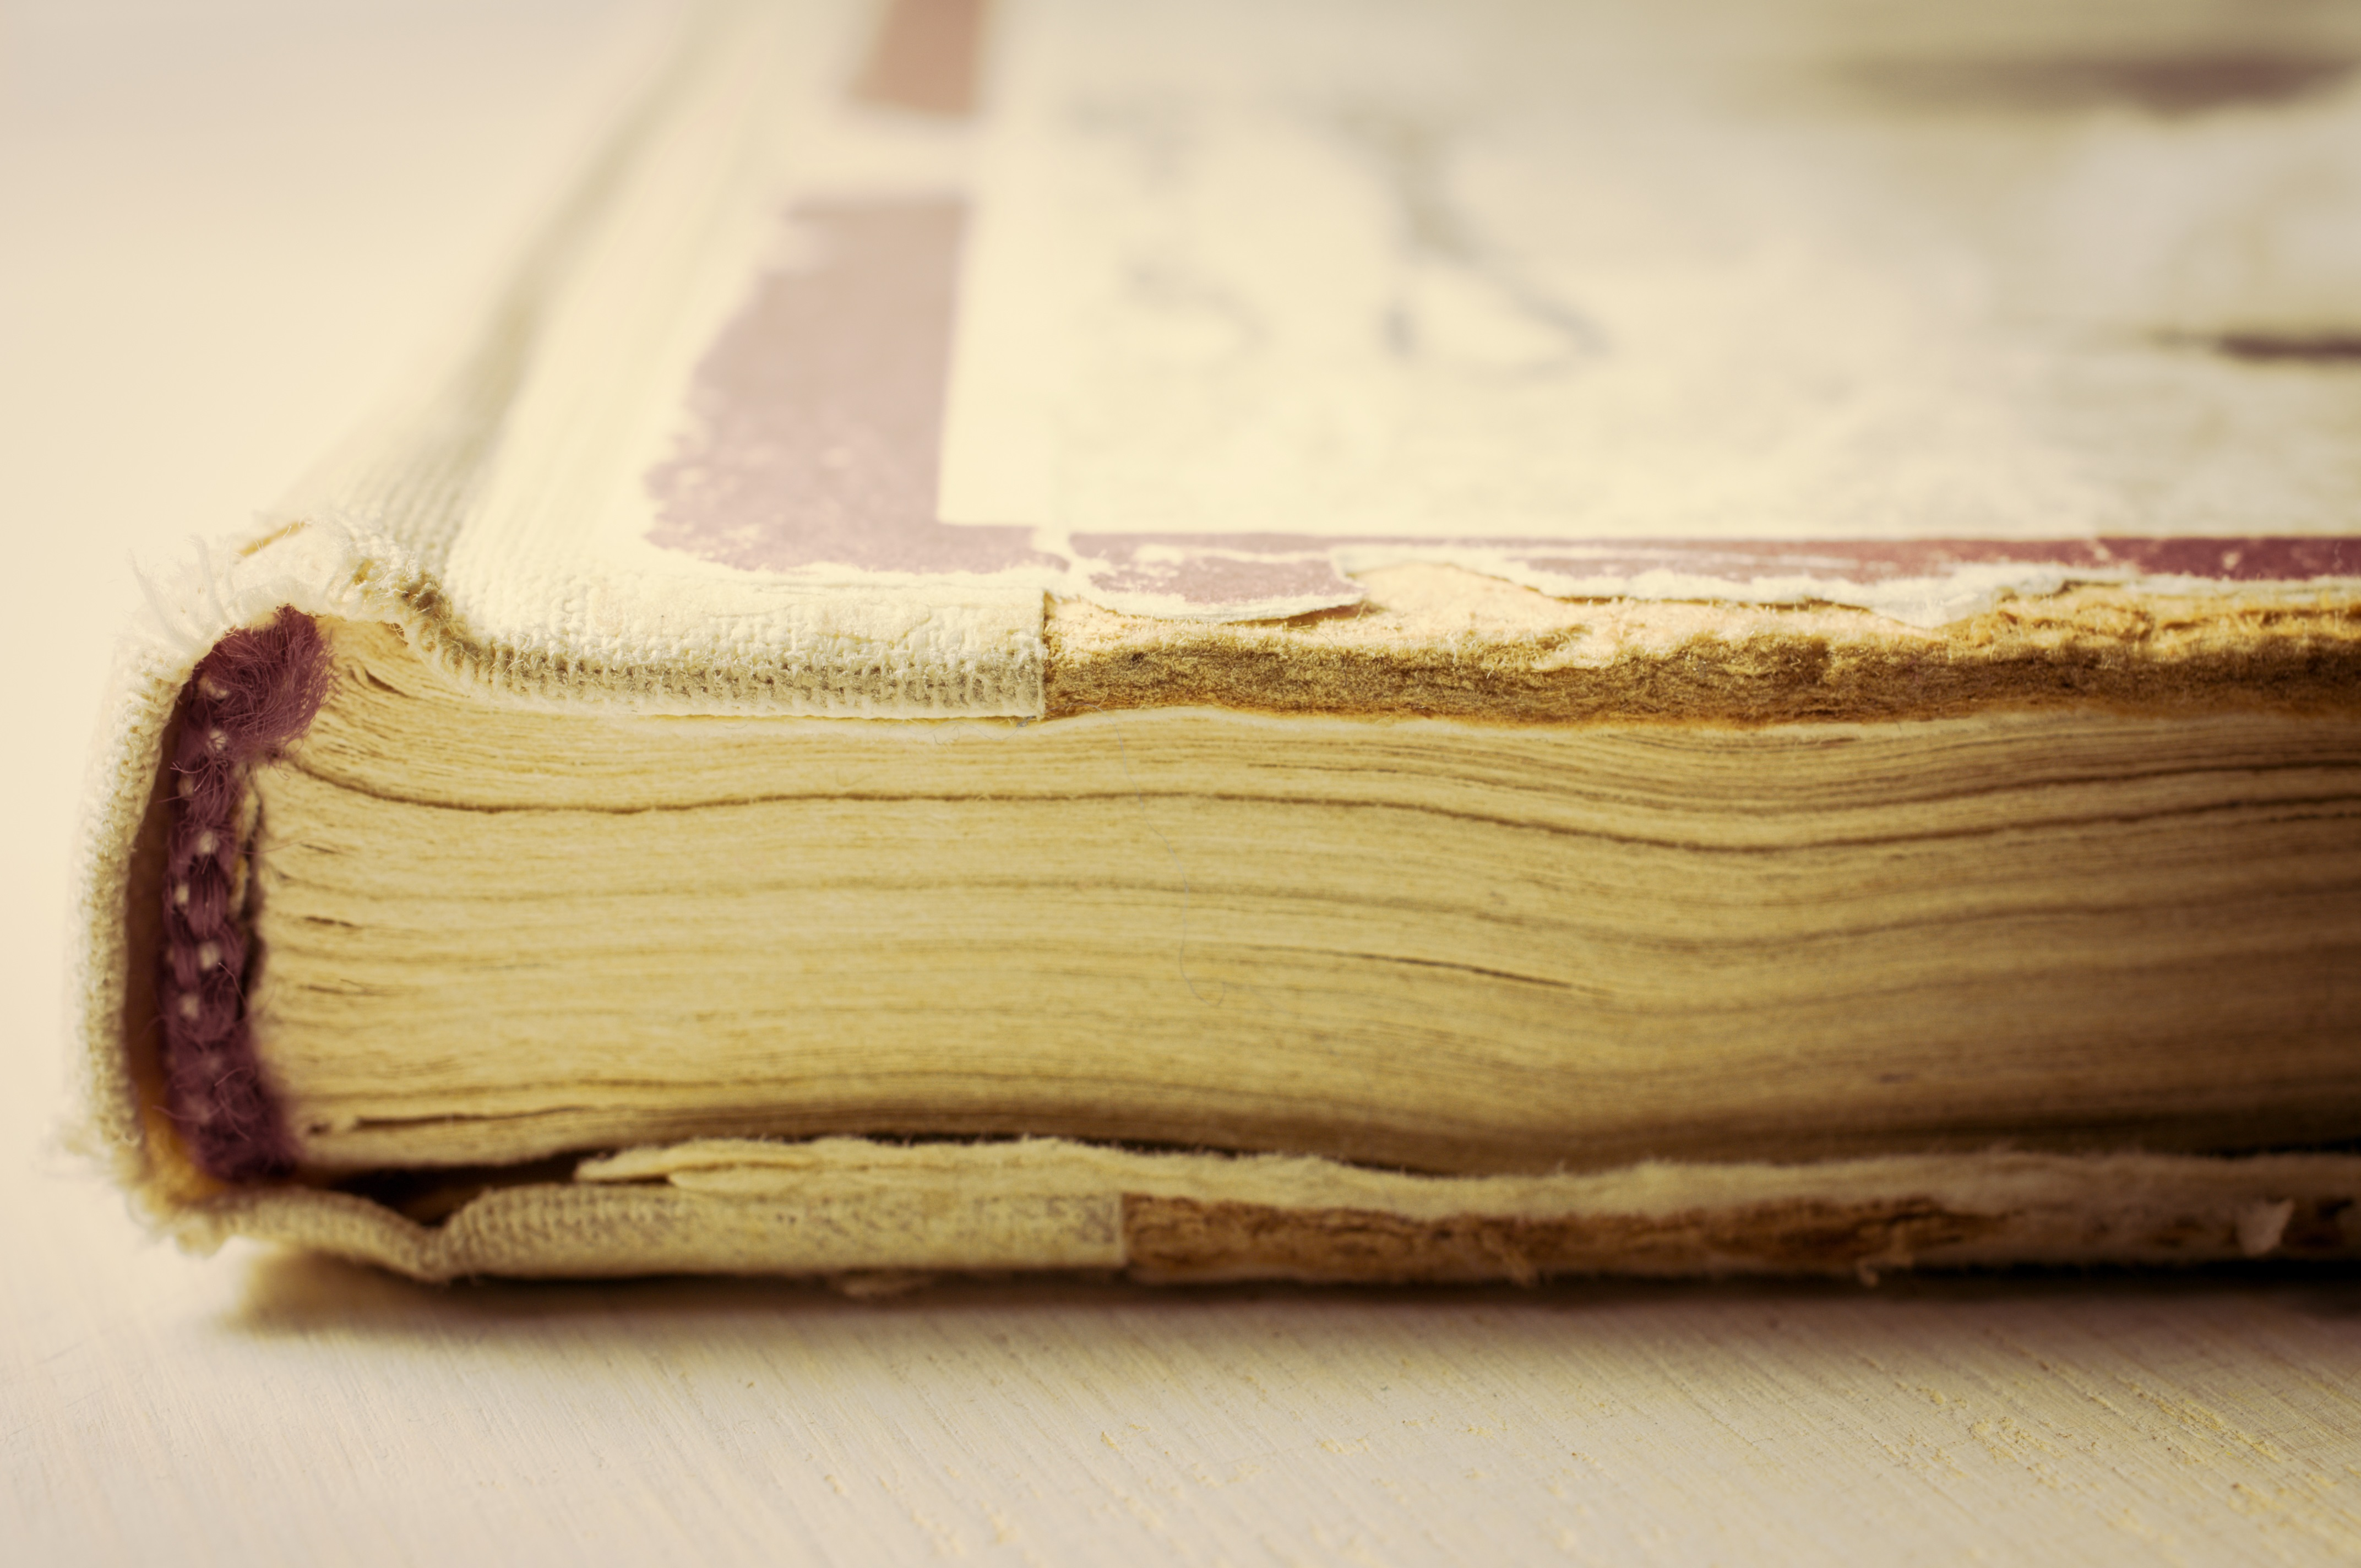 Close-up of an antique cookbook with faded pages of white and touches of red in the design.